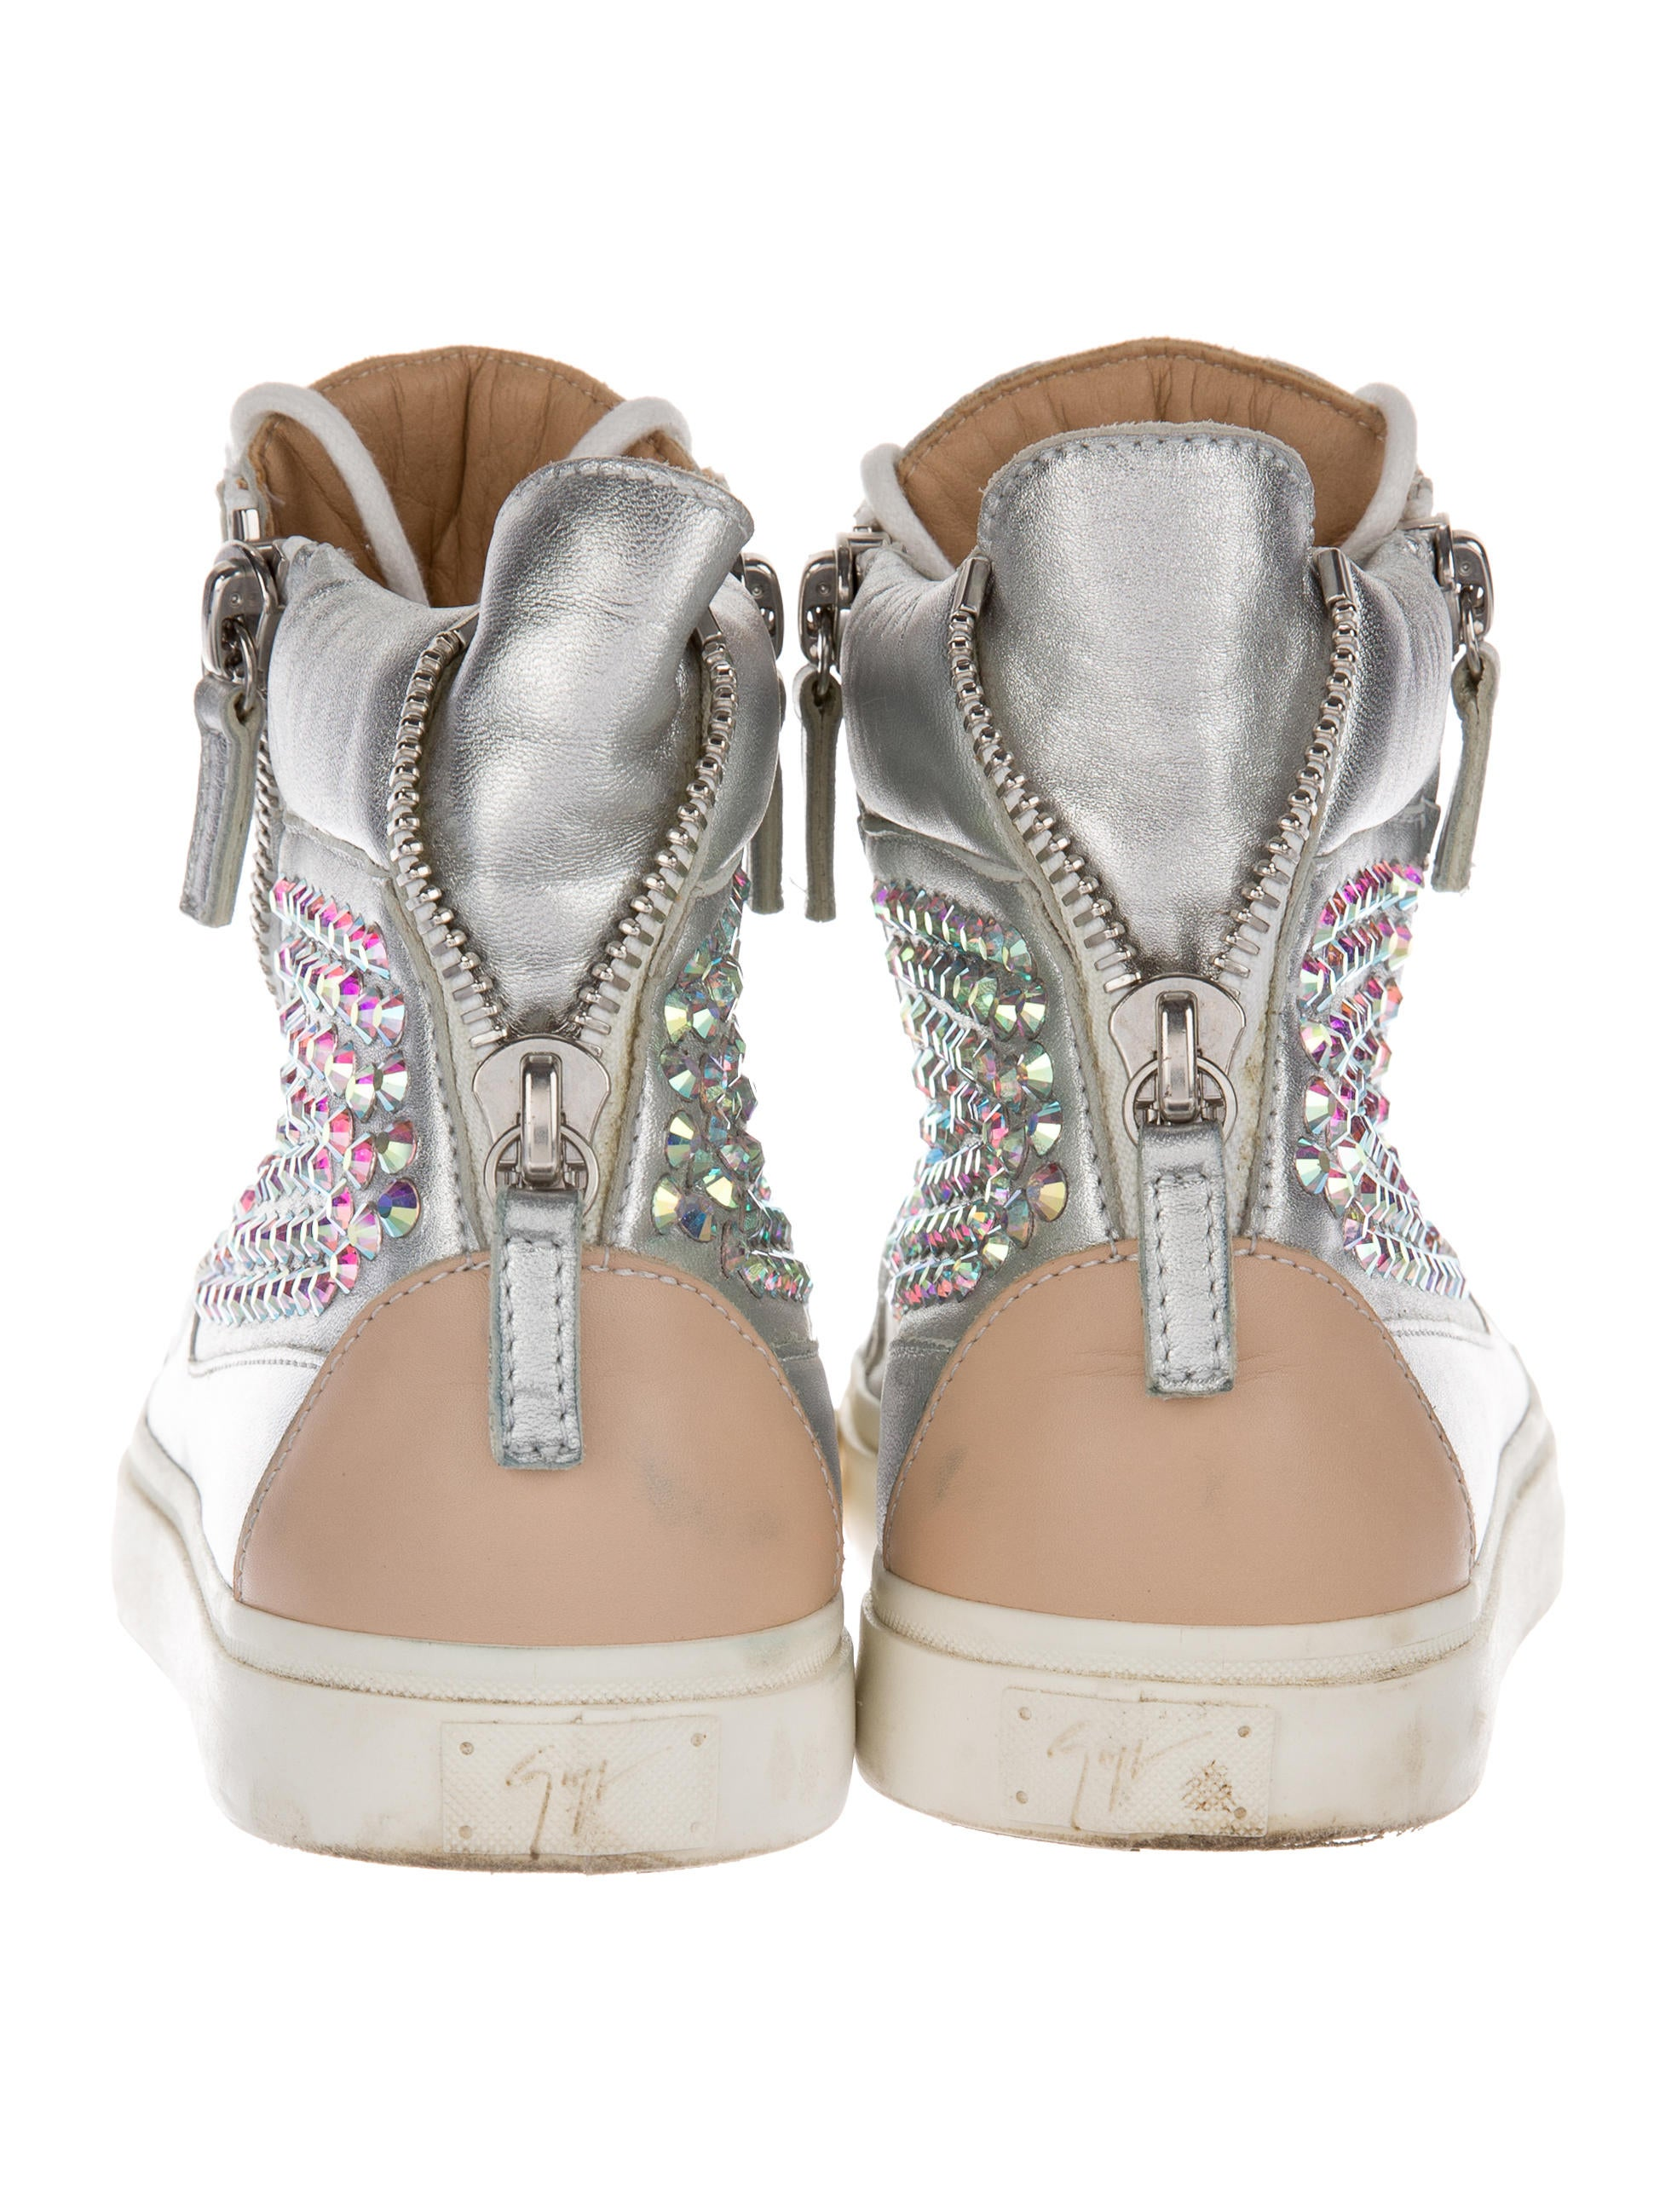 Giuseppe Zanotti Crystal Embellished High Top Sneakers